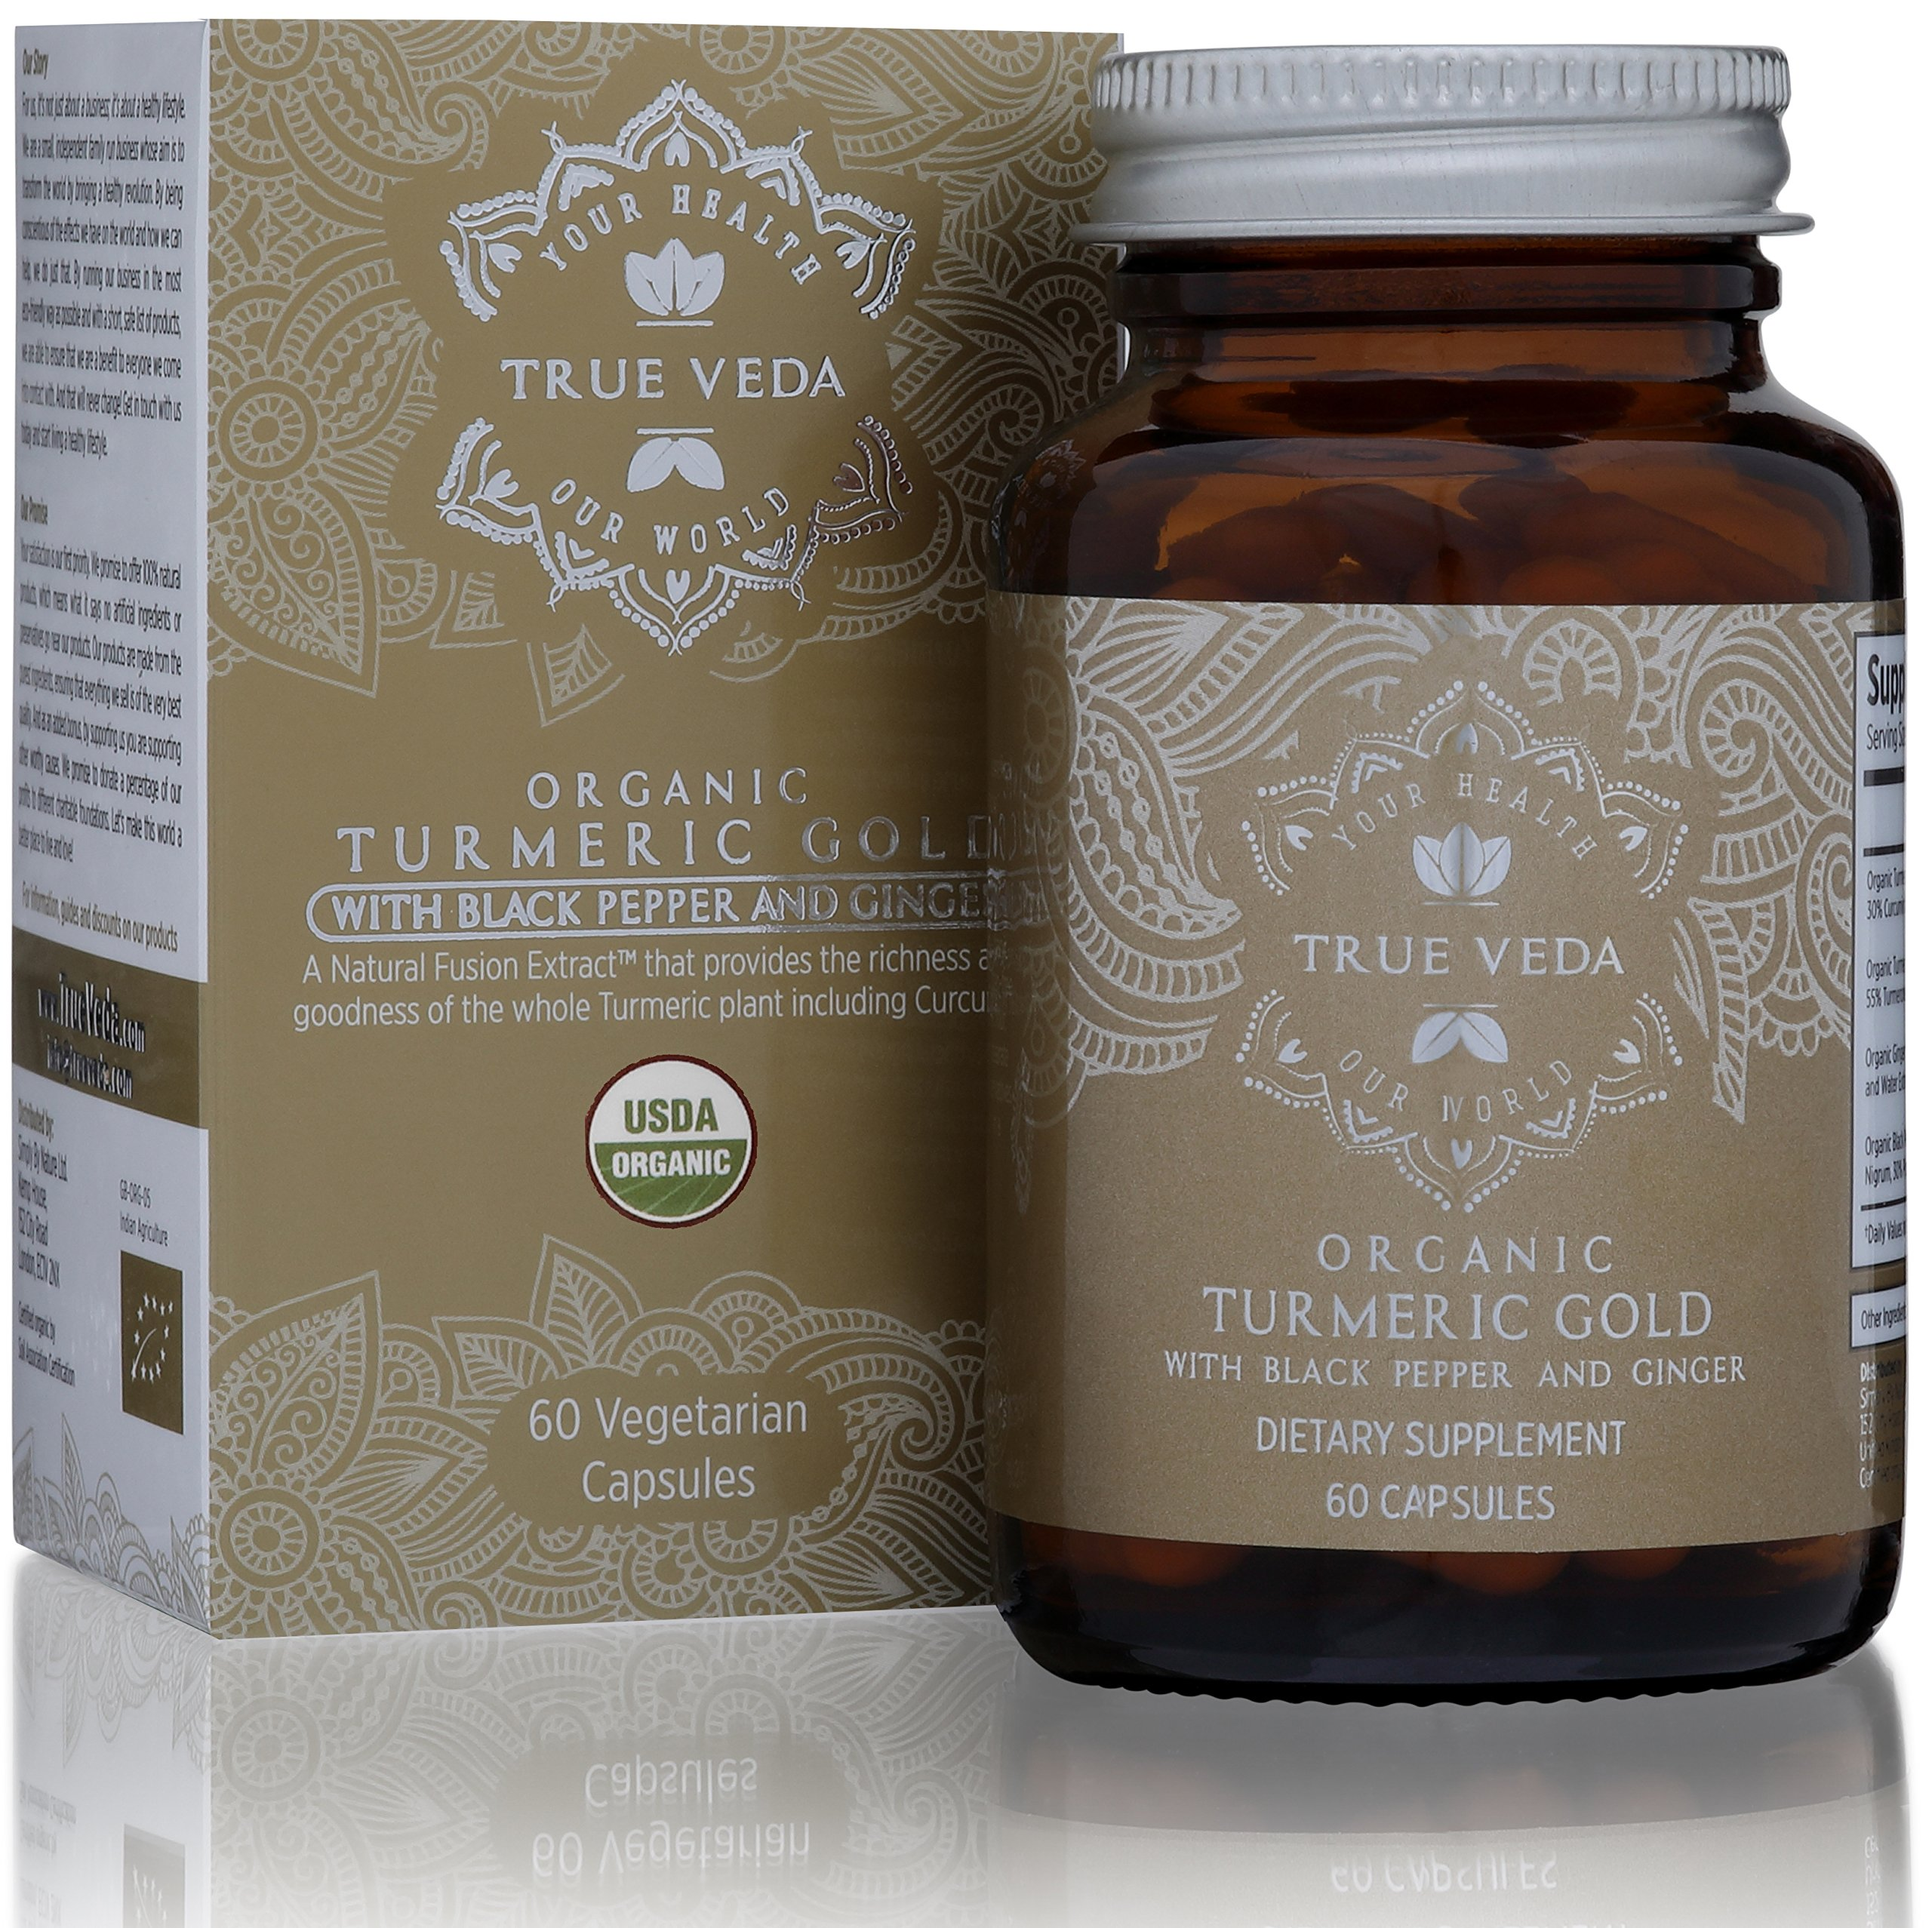 Organic Turmeric Curcumin Capsules - Includes Organic Ginger and Black Pepper Extracts   Certified Organic by USDA   100% Natural Herbal Supplement   Natural Anti-inflammatory   Antioxidant   60 Pills